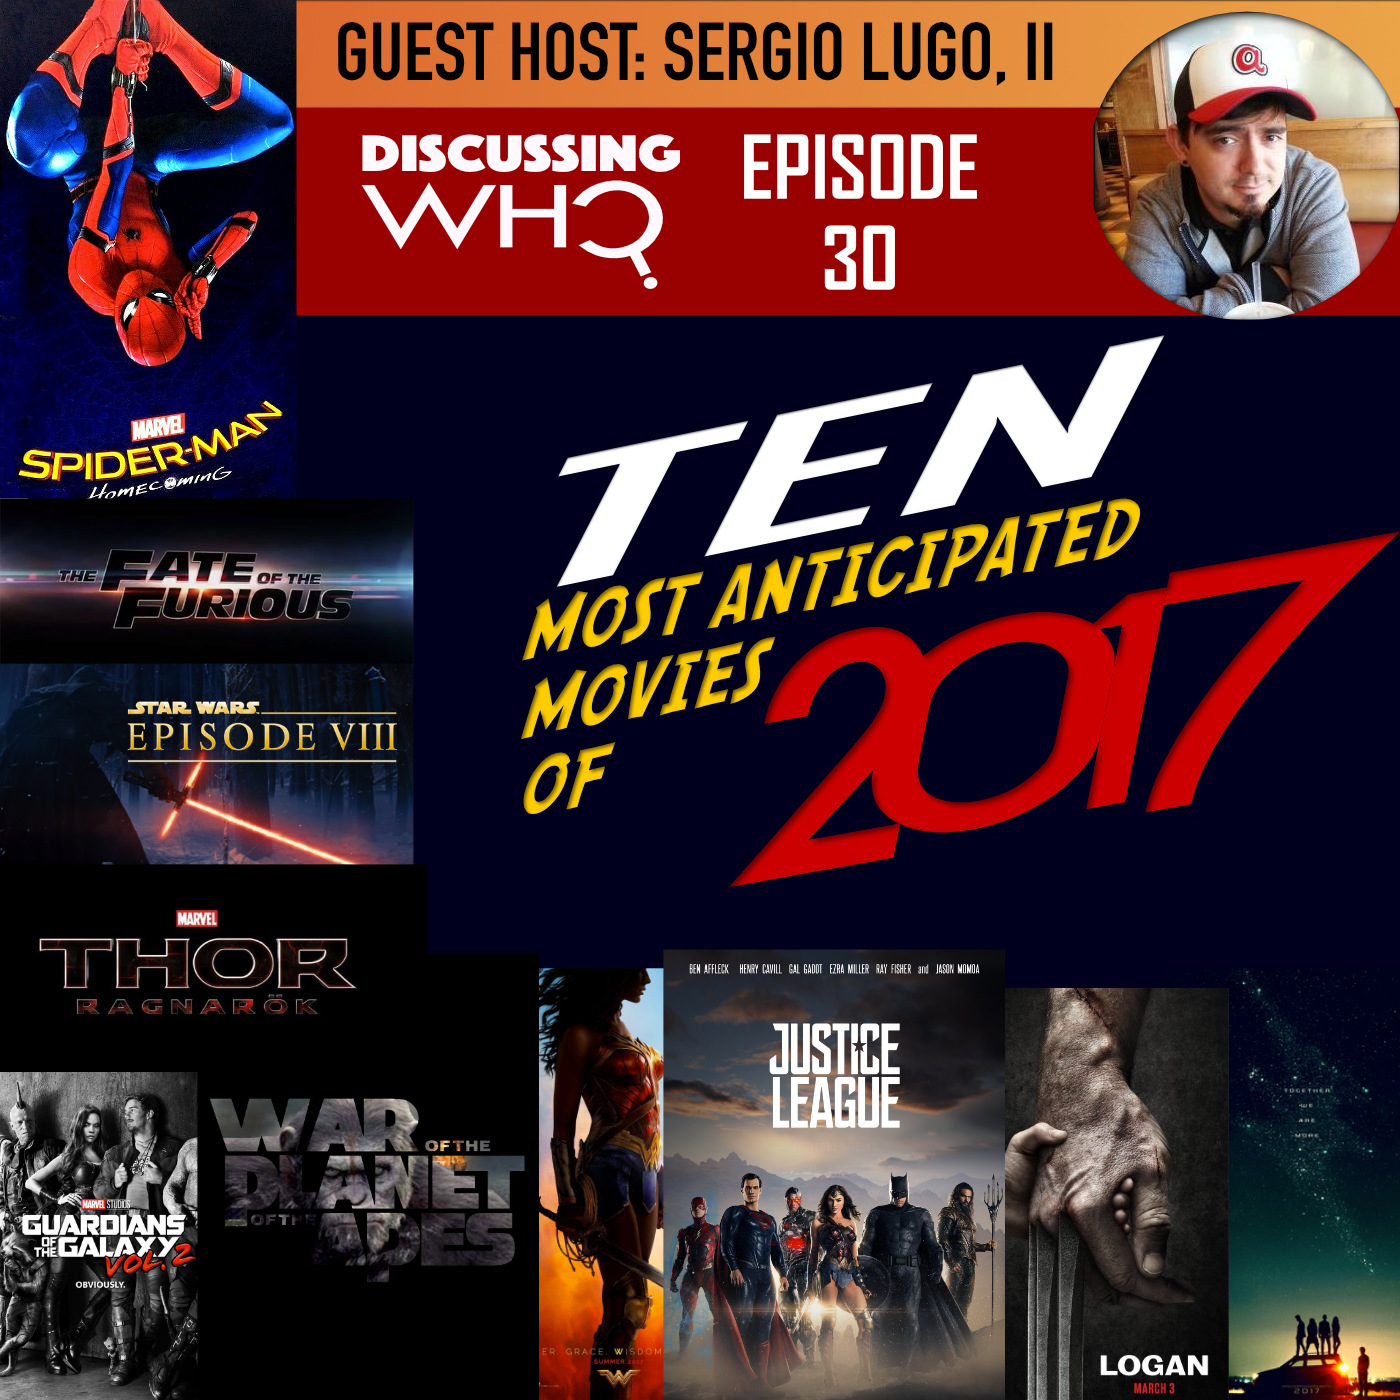 Ten Most Anticipated Movies of 2017